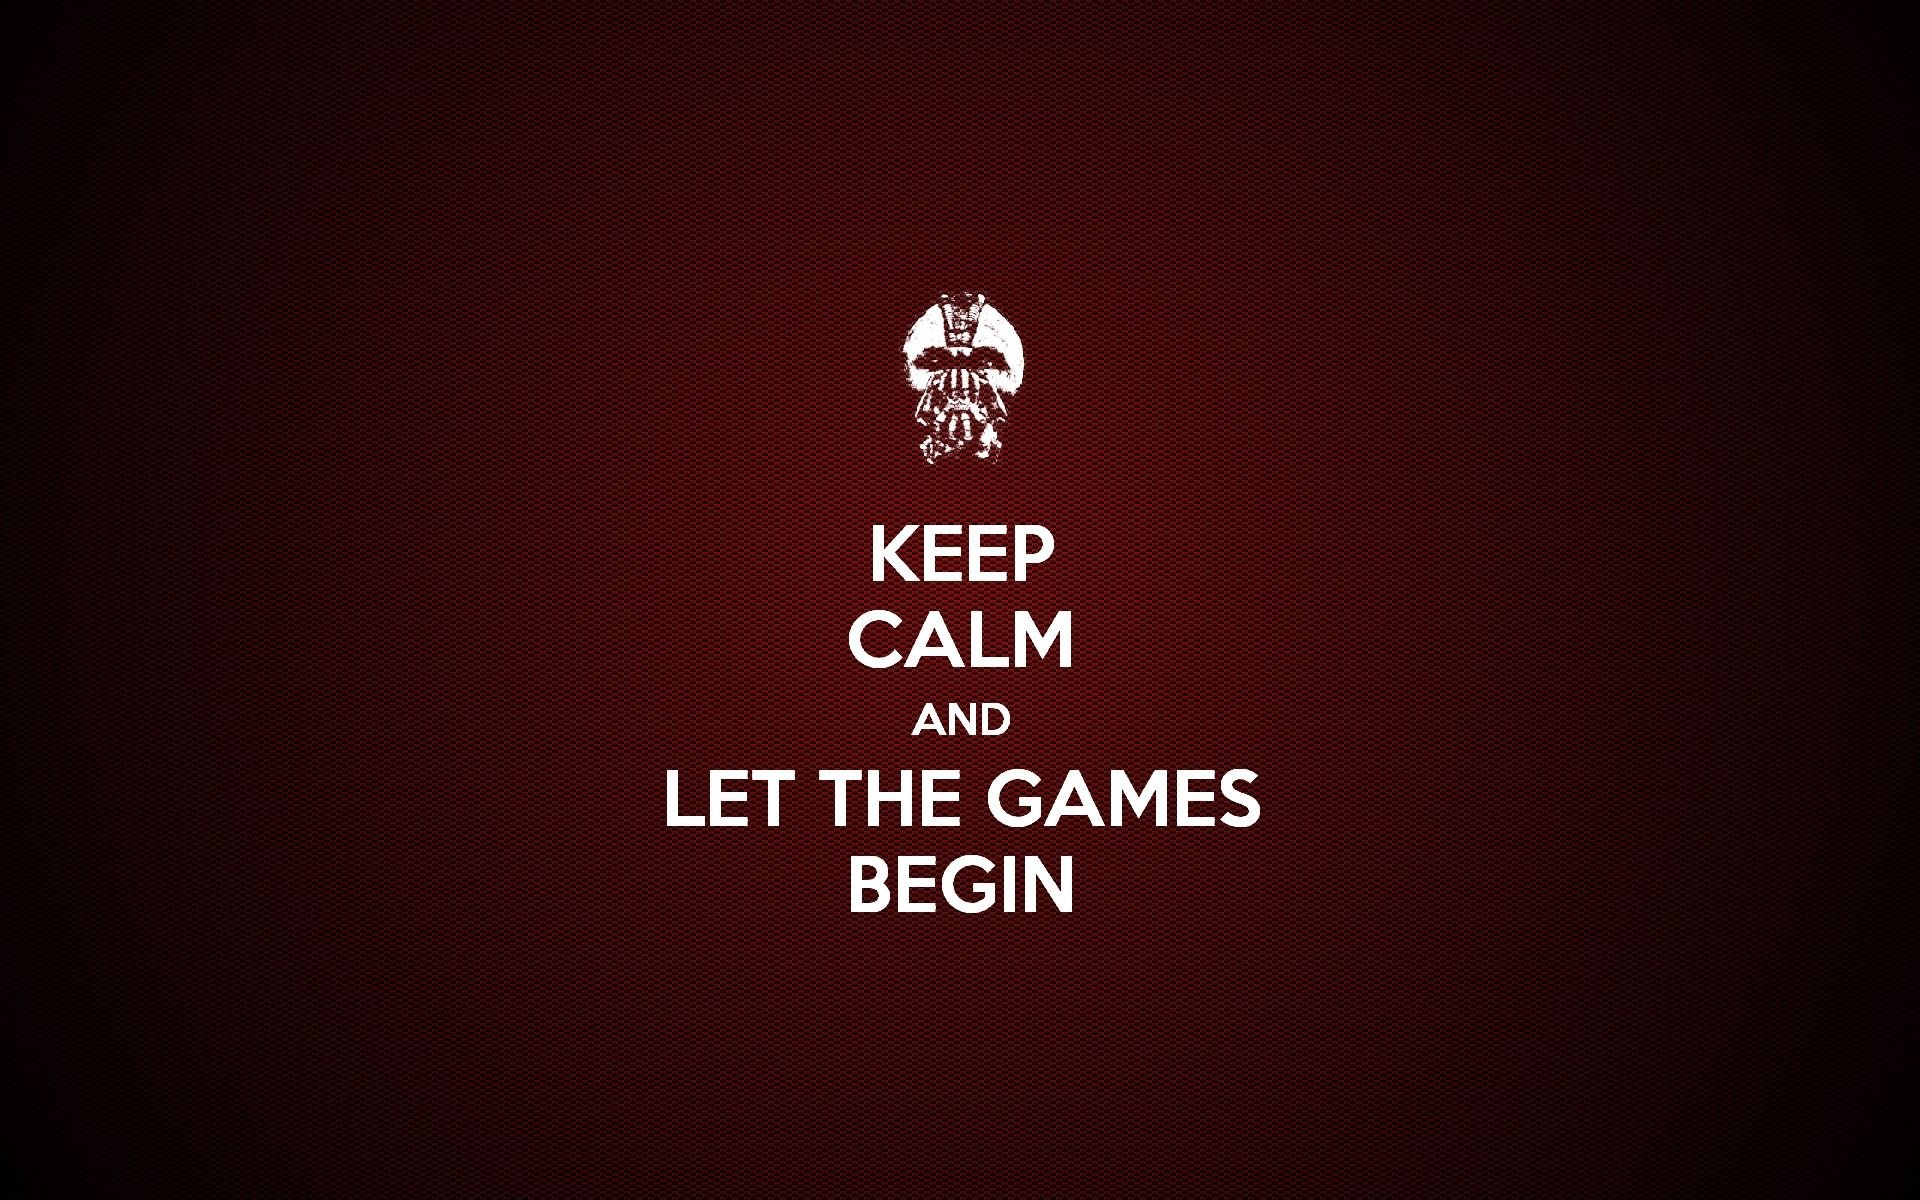 Best Stay Calm Quotes Keep Calm Let Games Begin Wallpapers Keep